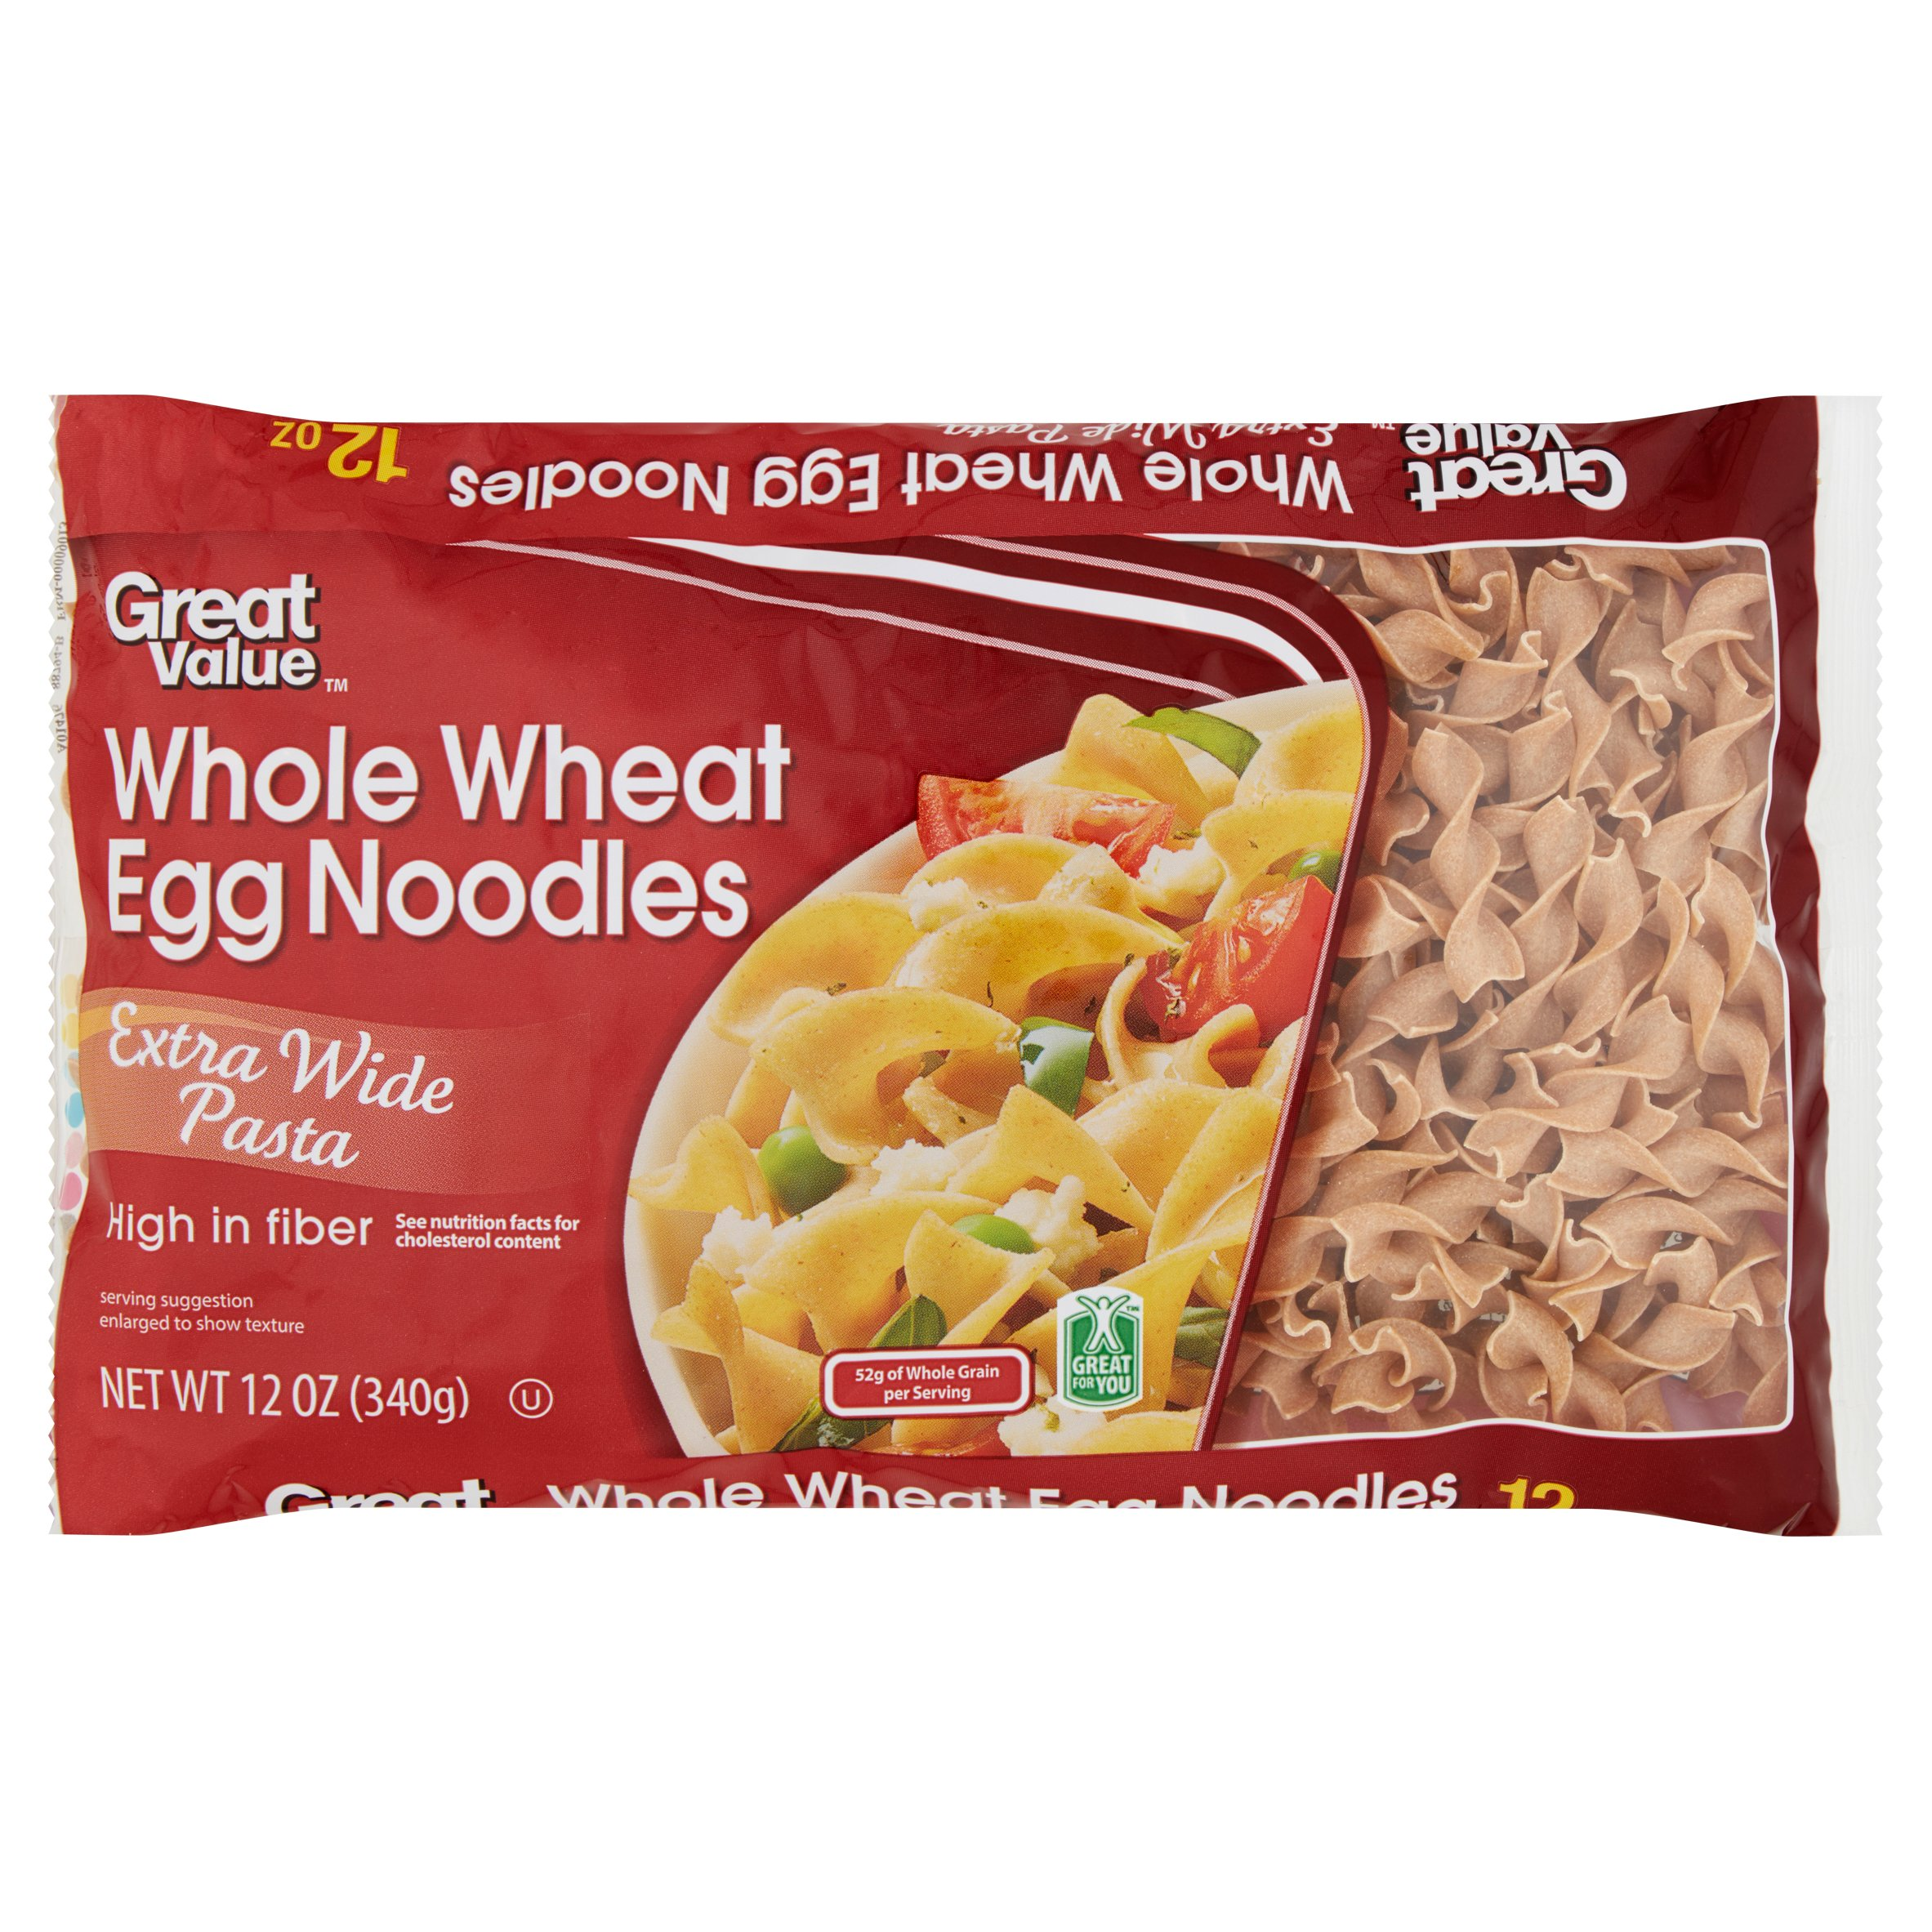 Gluten Free Egg Noodles Whole Foods